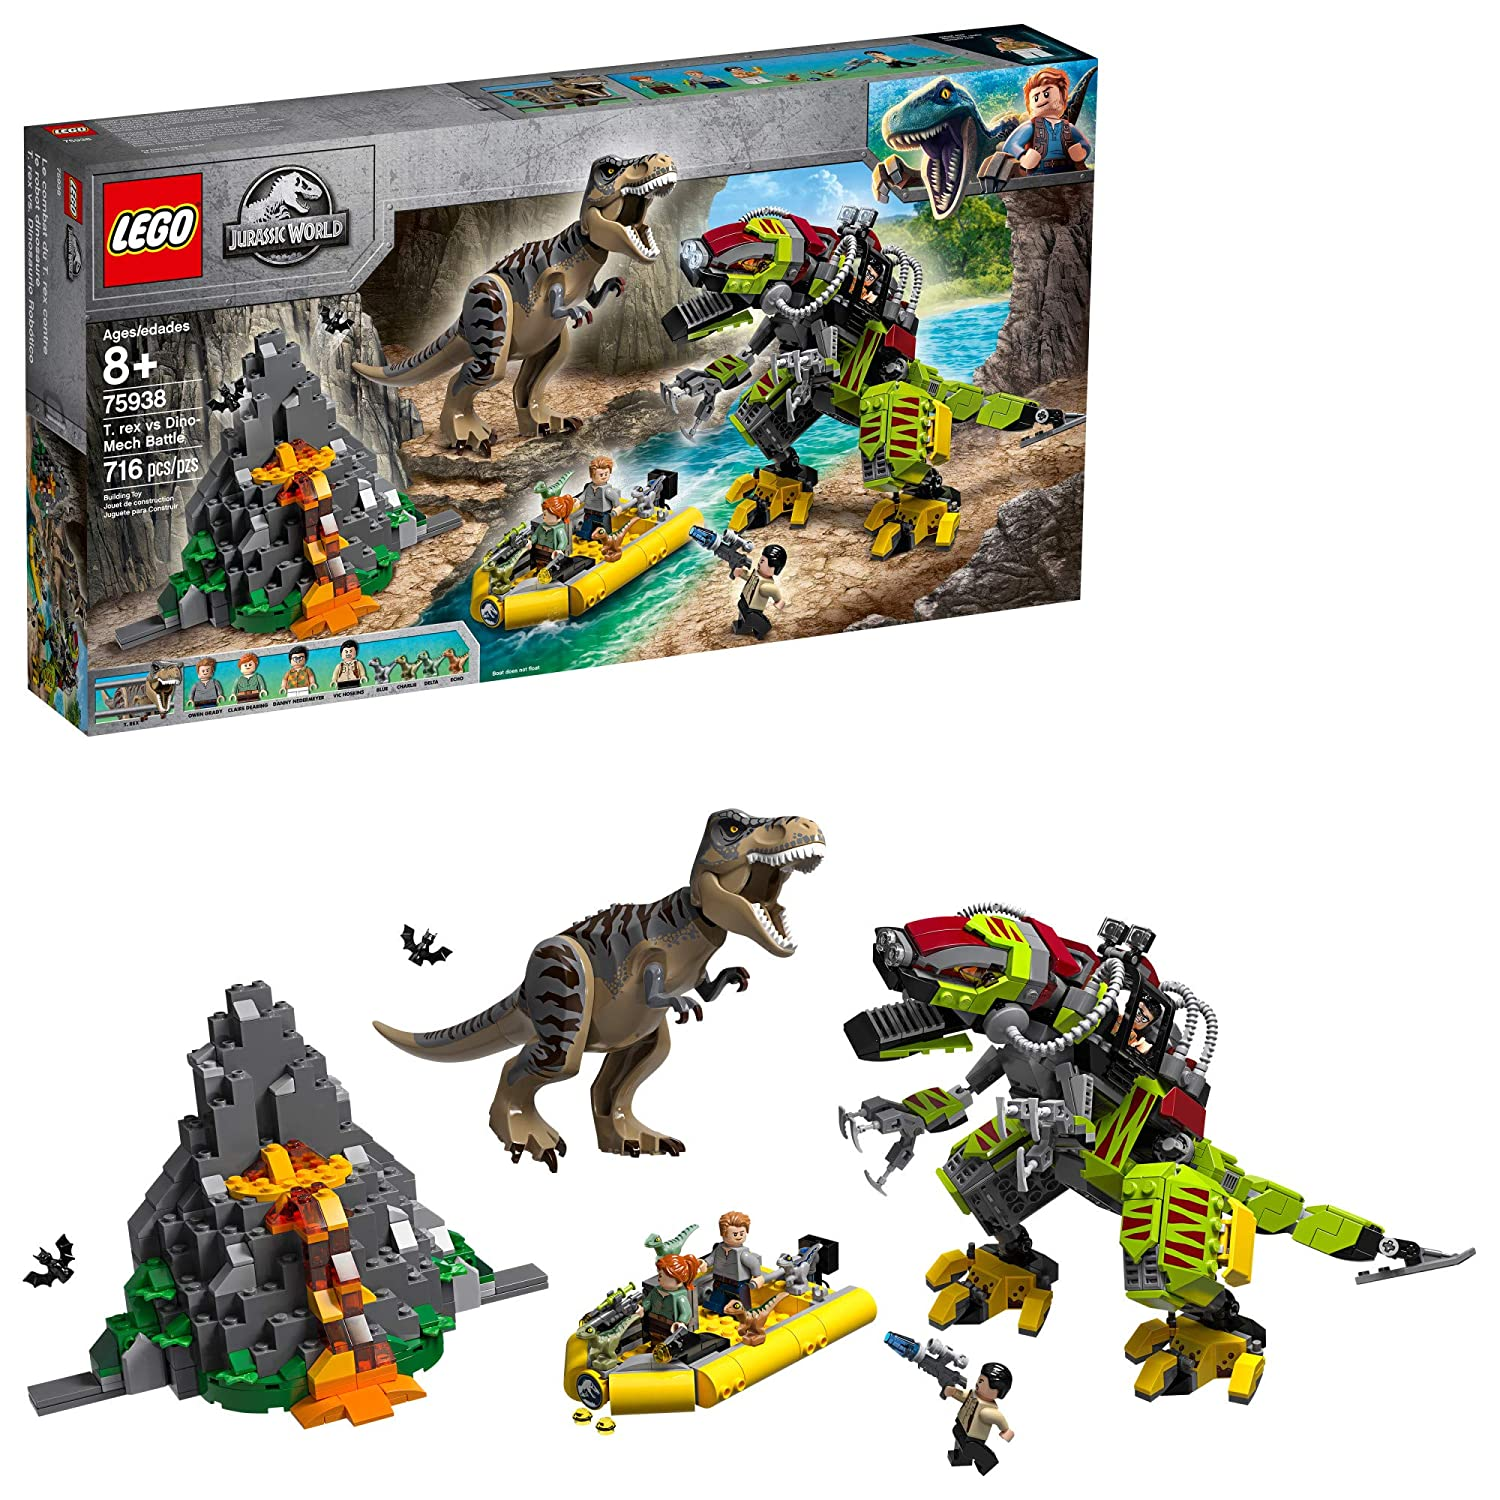 Top 8 Best Lego Dinosaurs Set Reviews in 2020 7